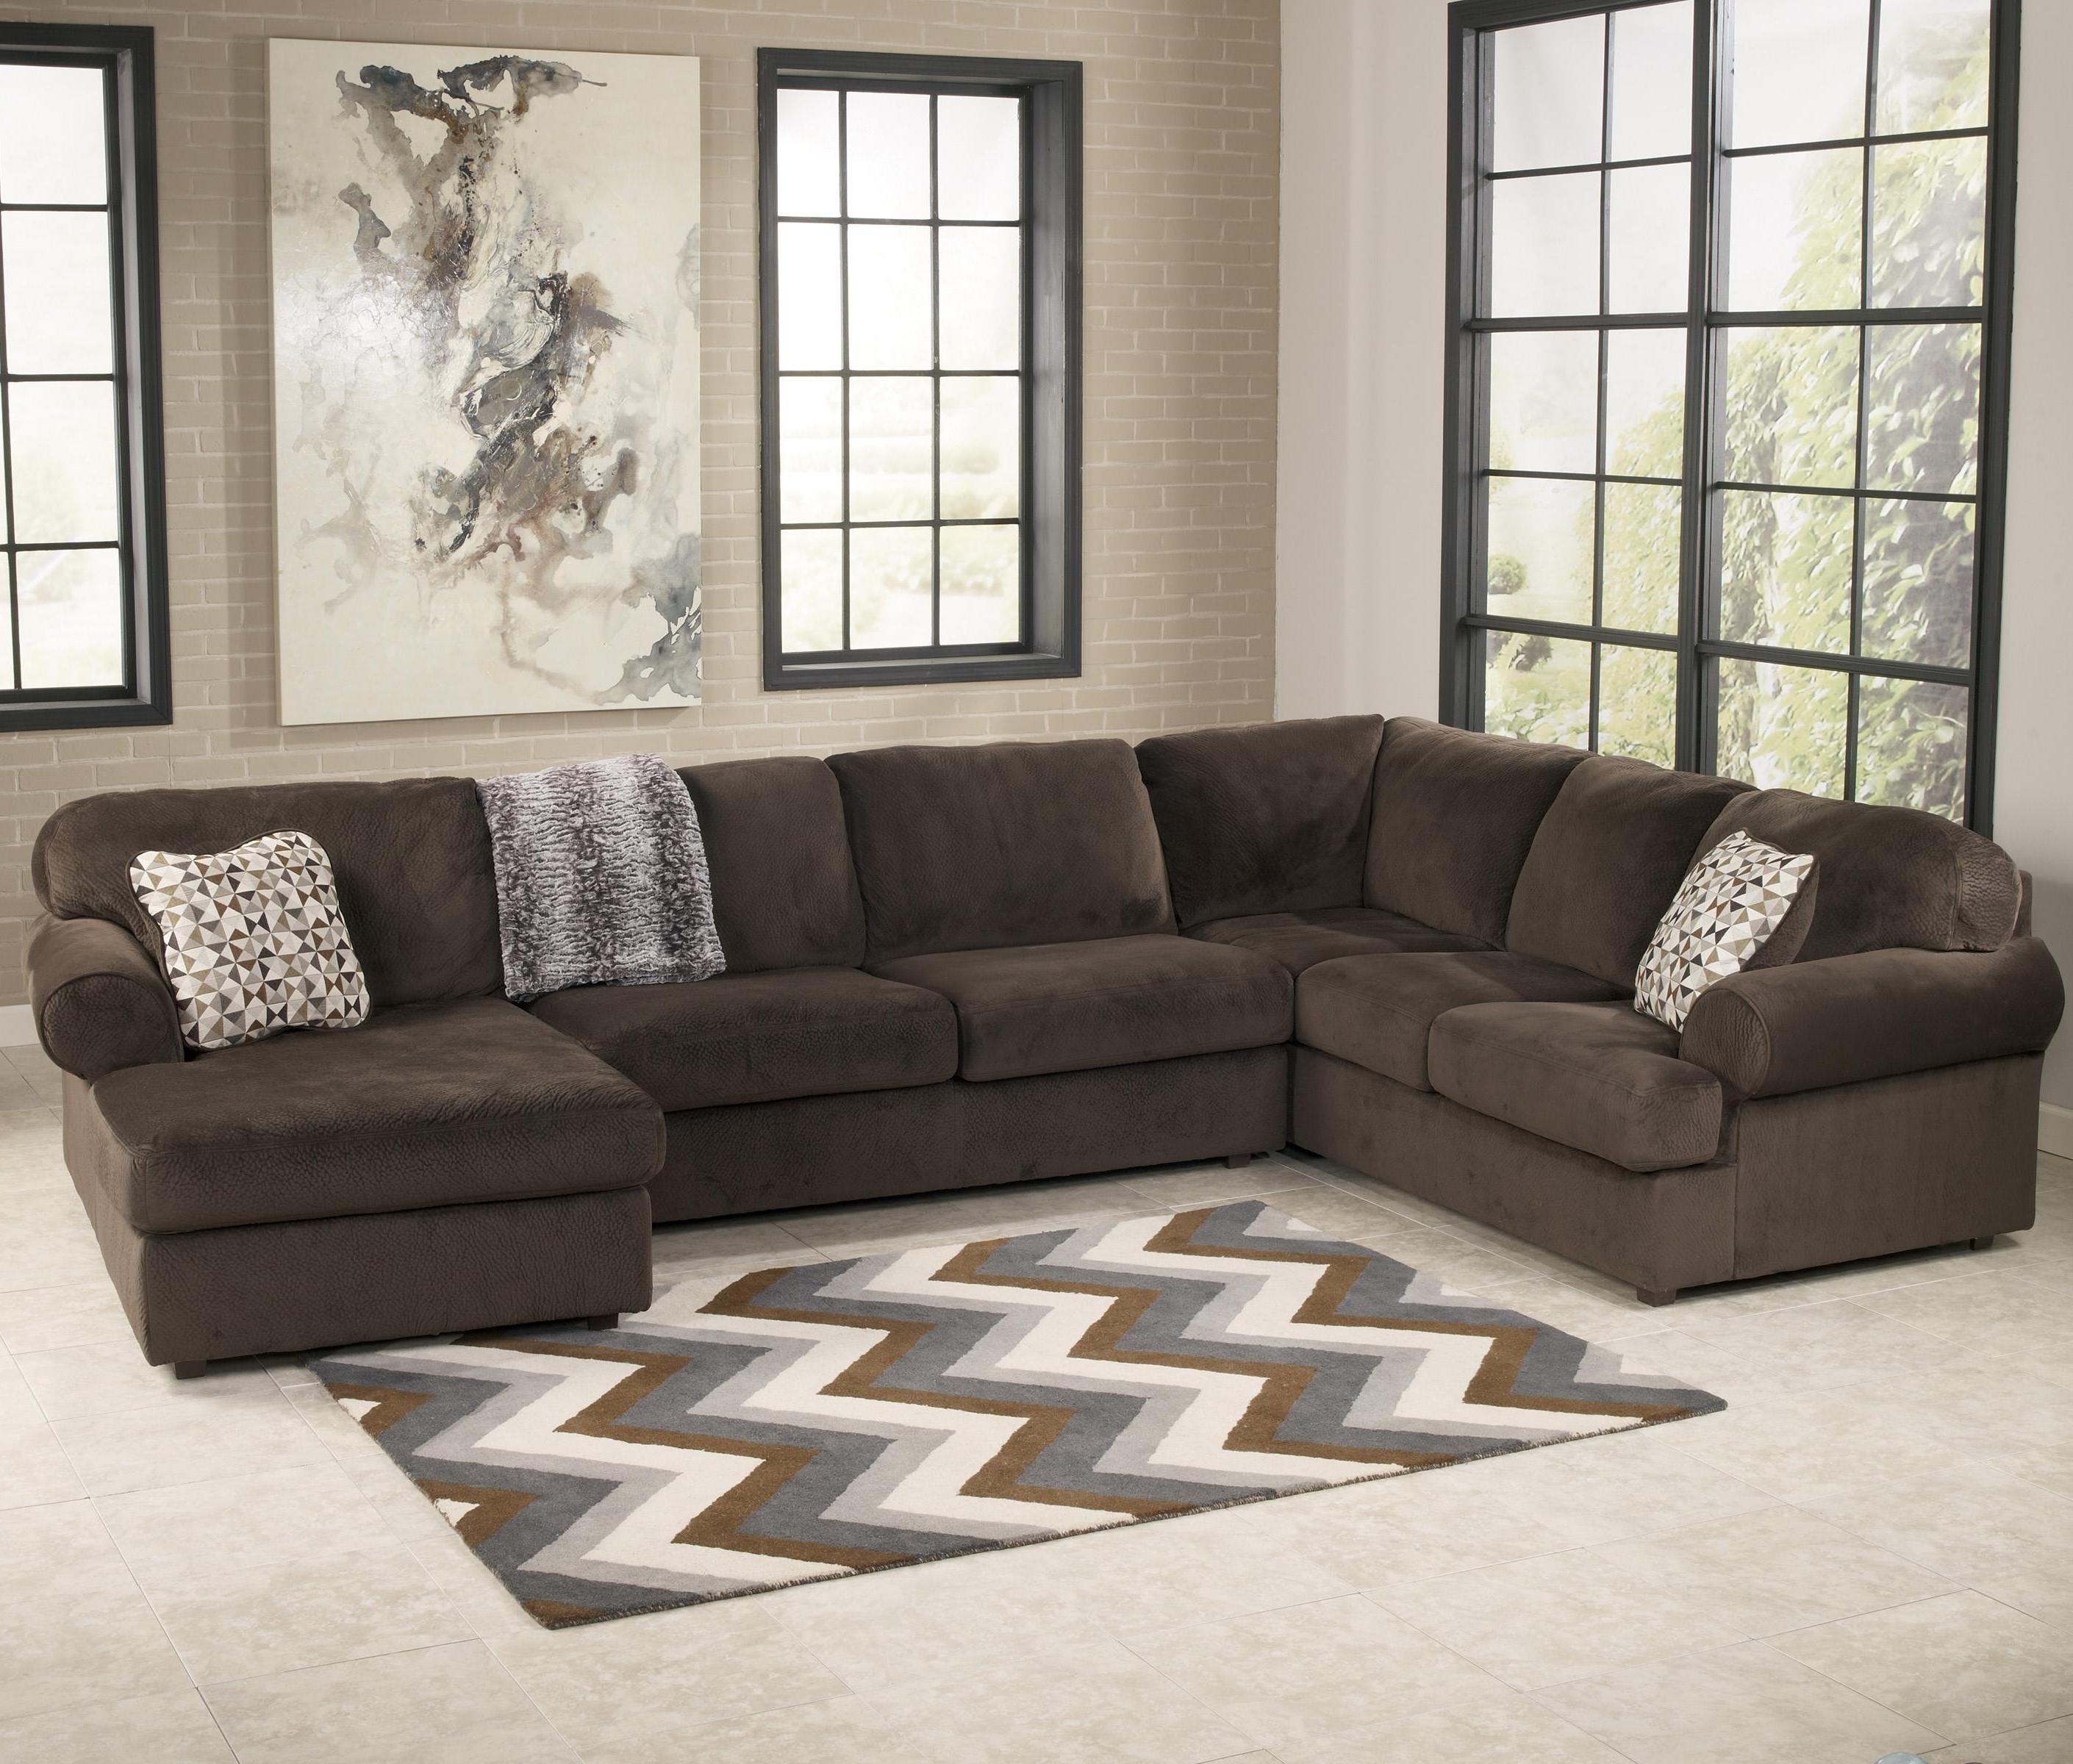 Right Sectional Sofa Sven Intuition Gray Scandinavian Furniture With Latest Regina Sectional Sofas (View 5 of 15)